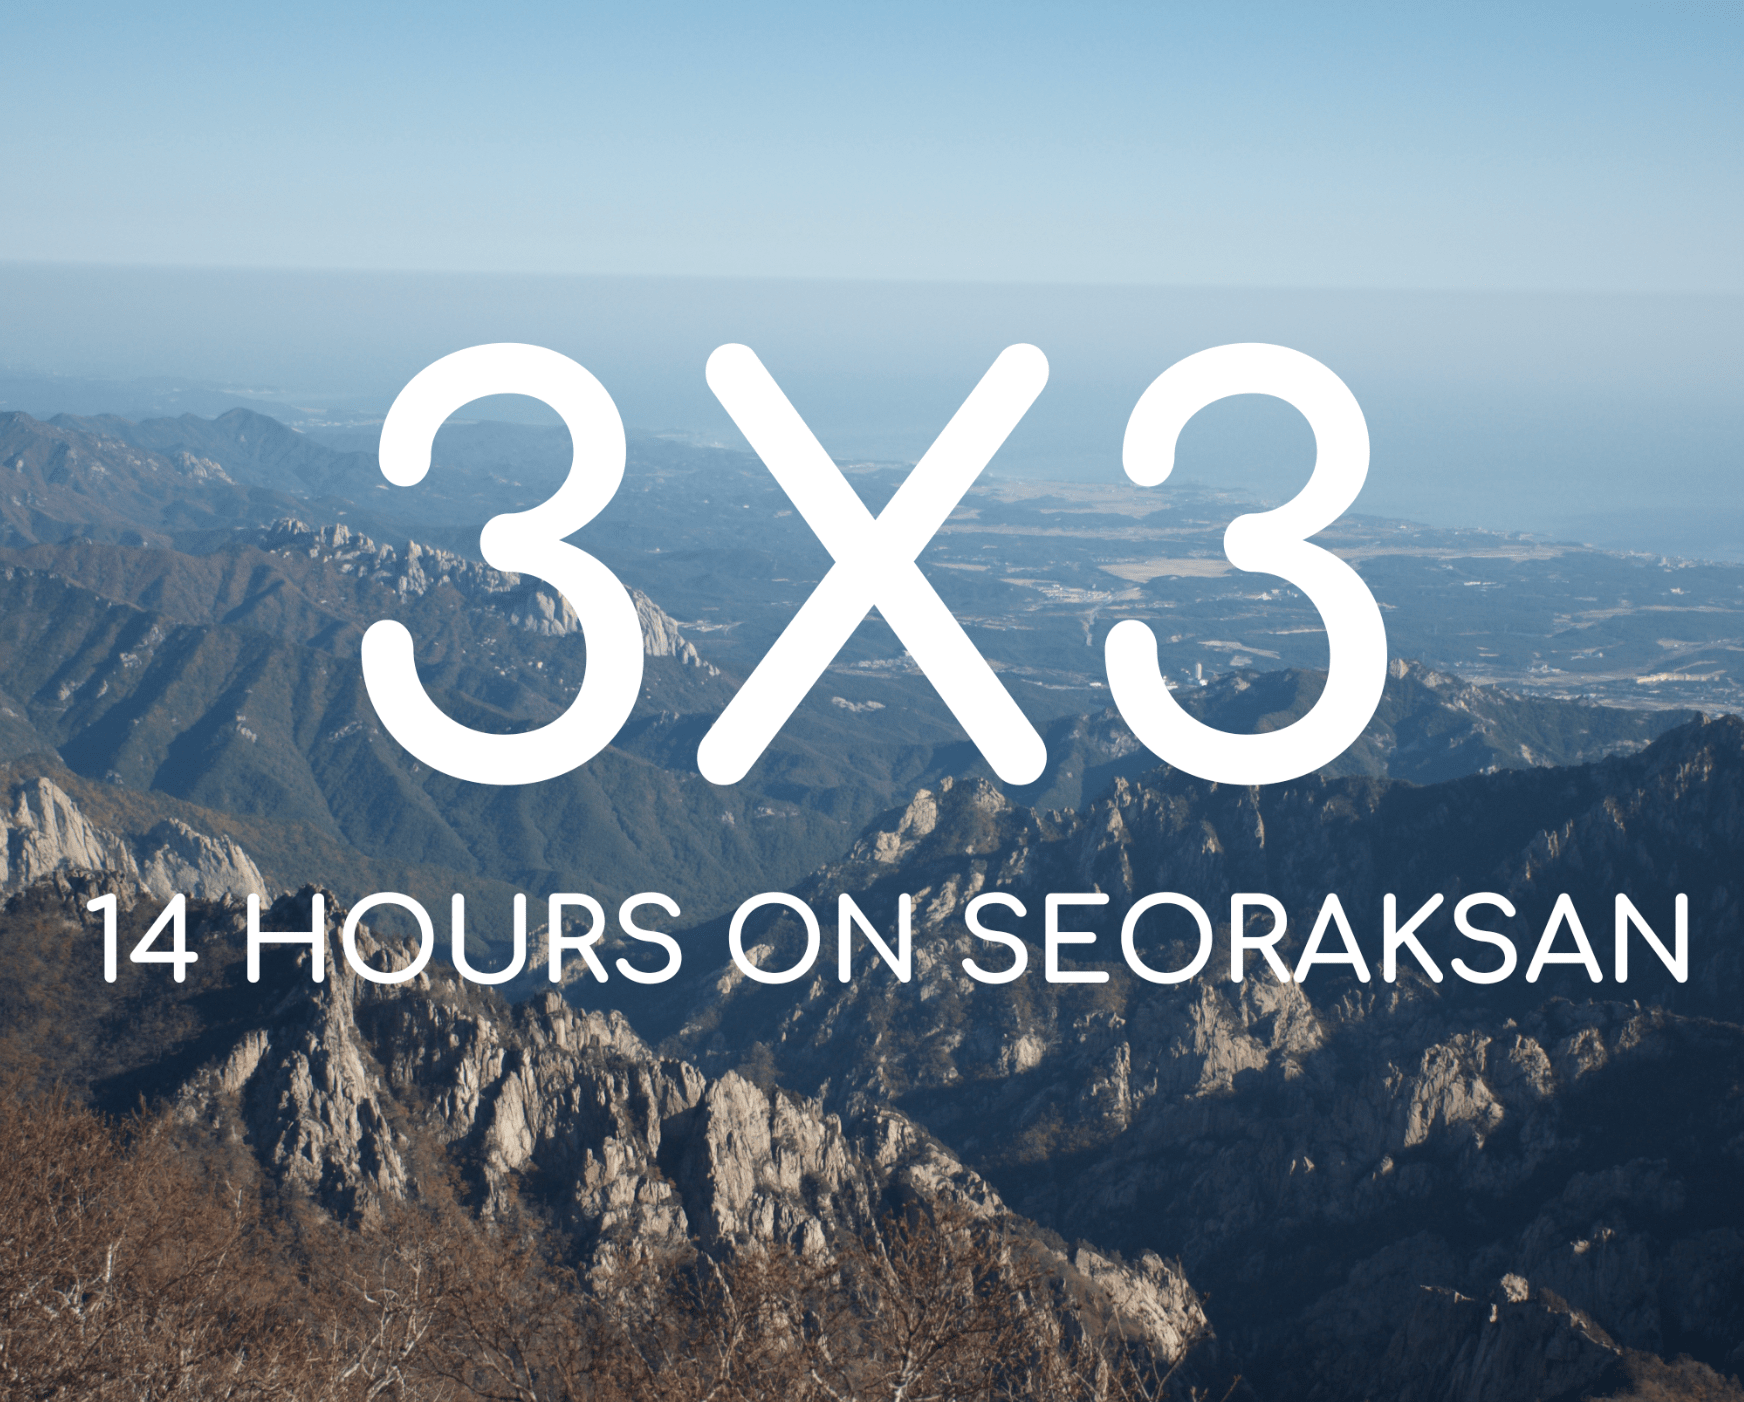 3X3 Hike on Seoraksan